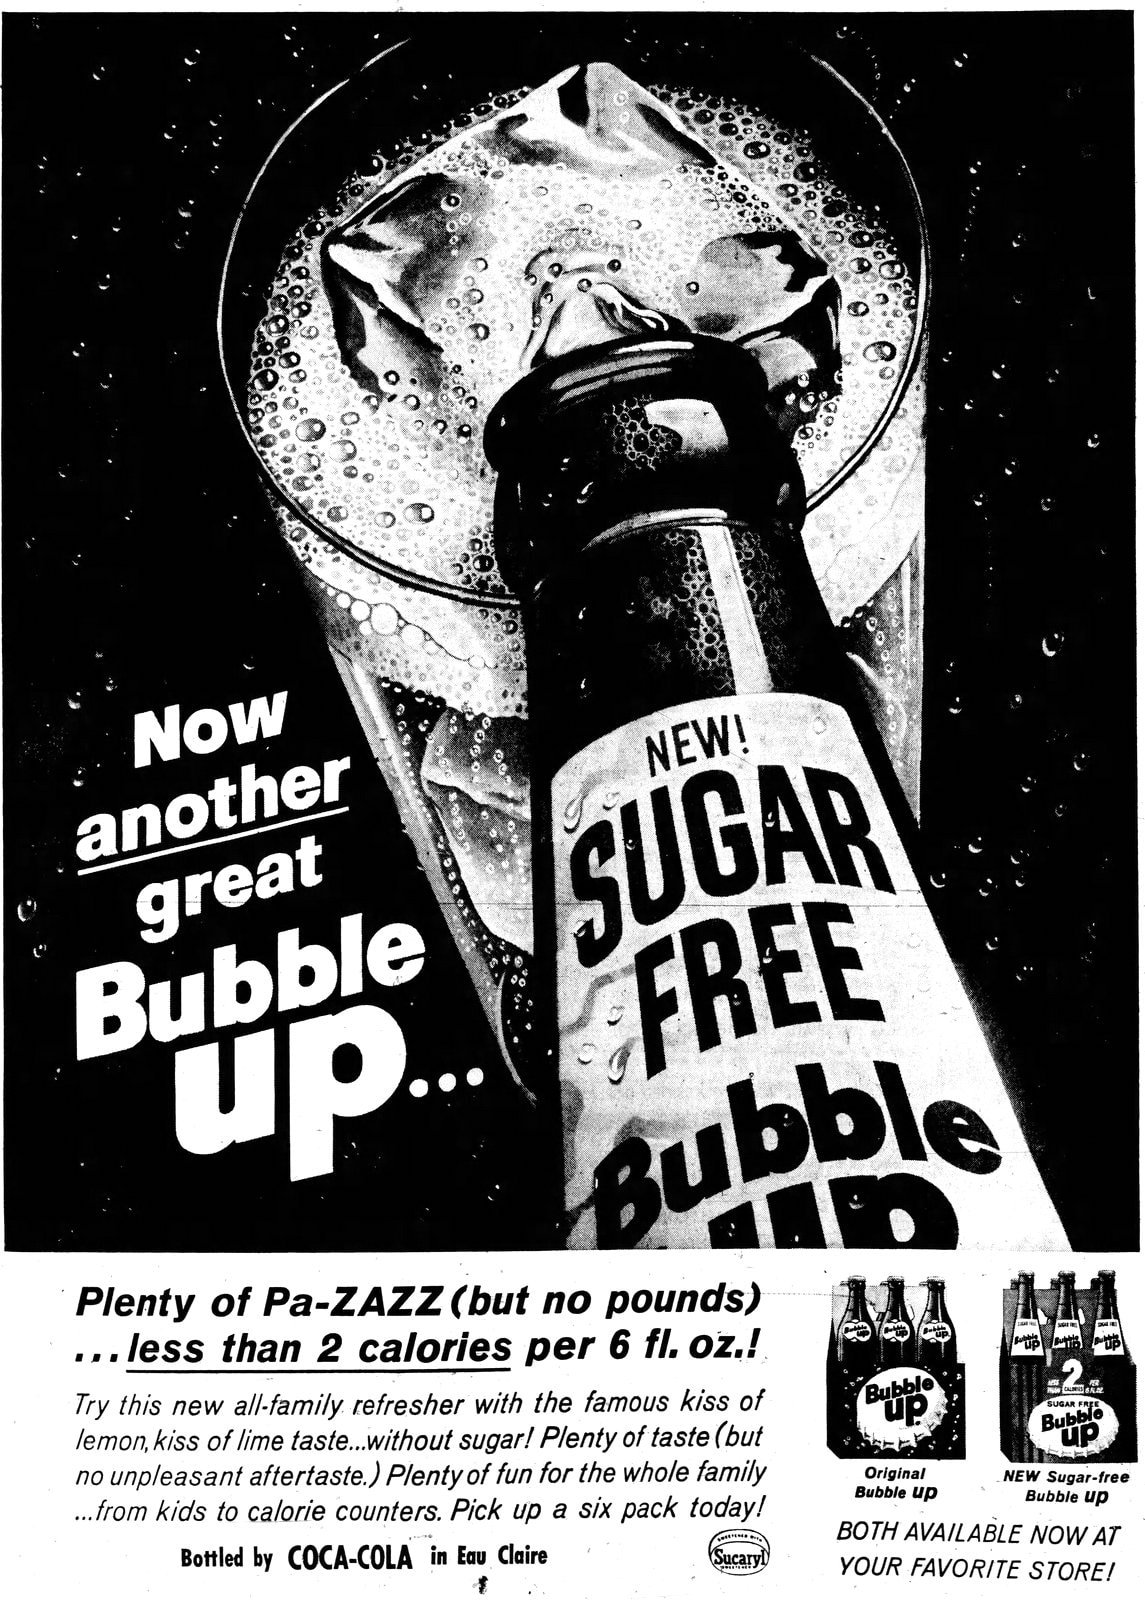 Vintage bottle Sugar Free Bubble Up soda (1963)